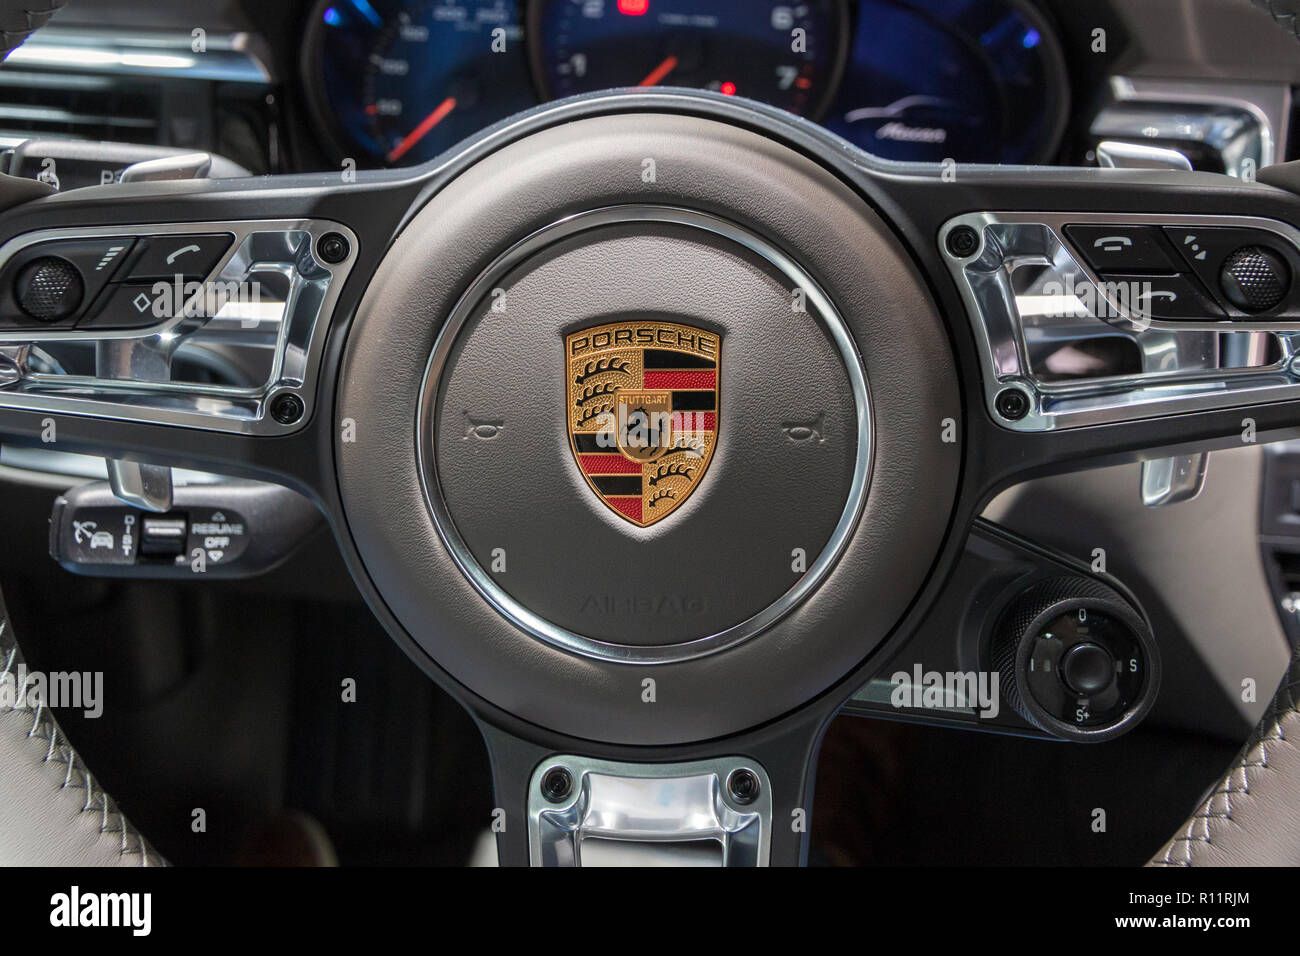 Paris Oct 3 2018 New 2019 Interior View Of The Porsche Macan Suv